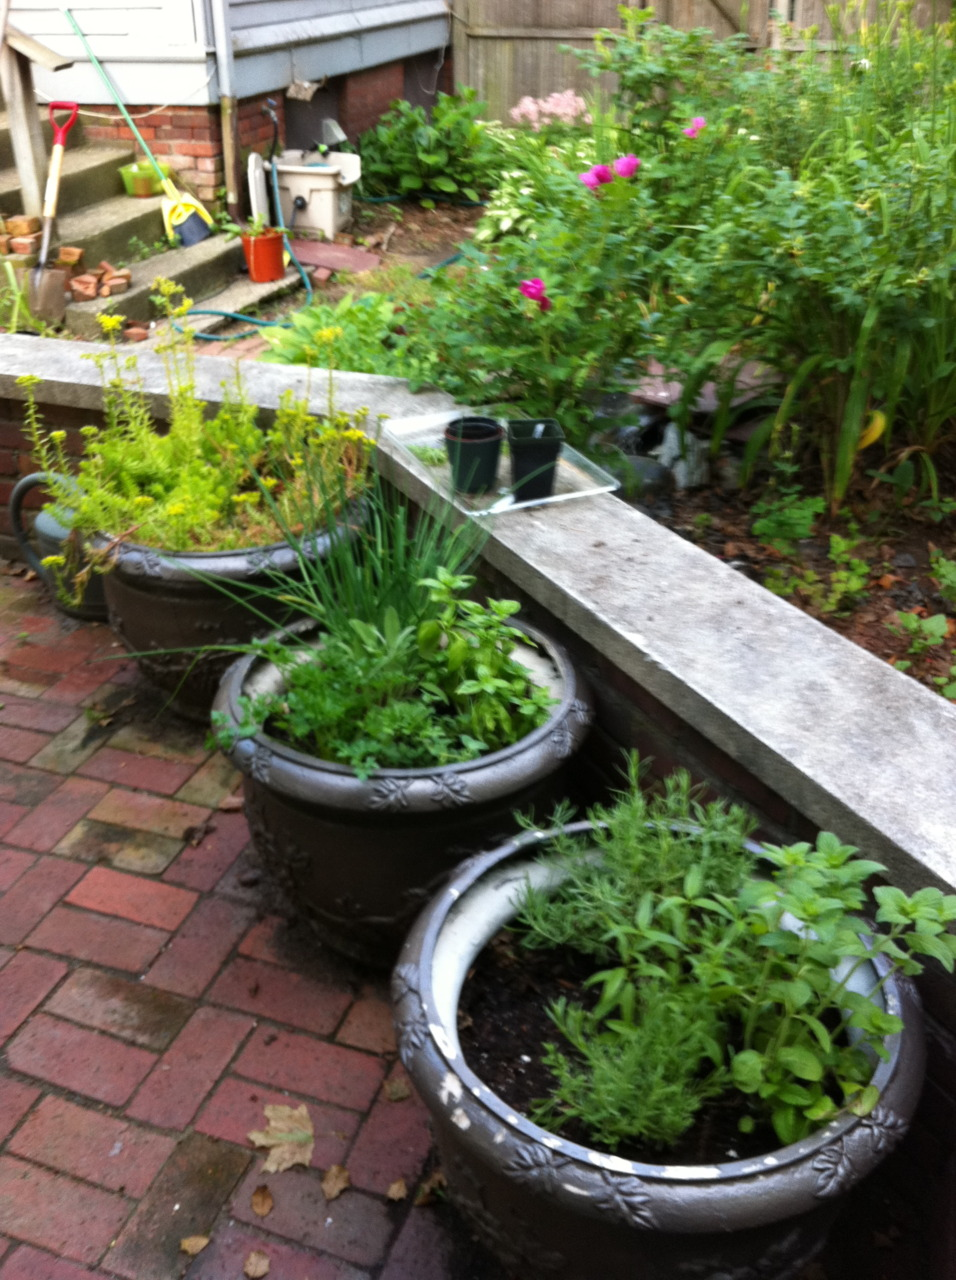 Patio pots - mint, rosemary, lavender, lemon verbena. Chives, basil, oregano, sage. Need thyme! Crazy sedum variety in last.